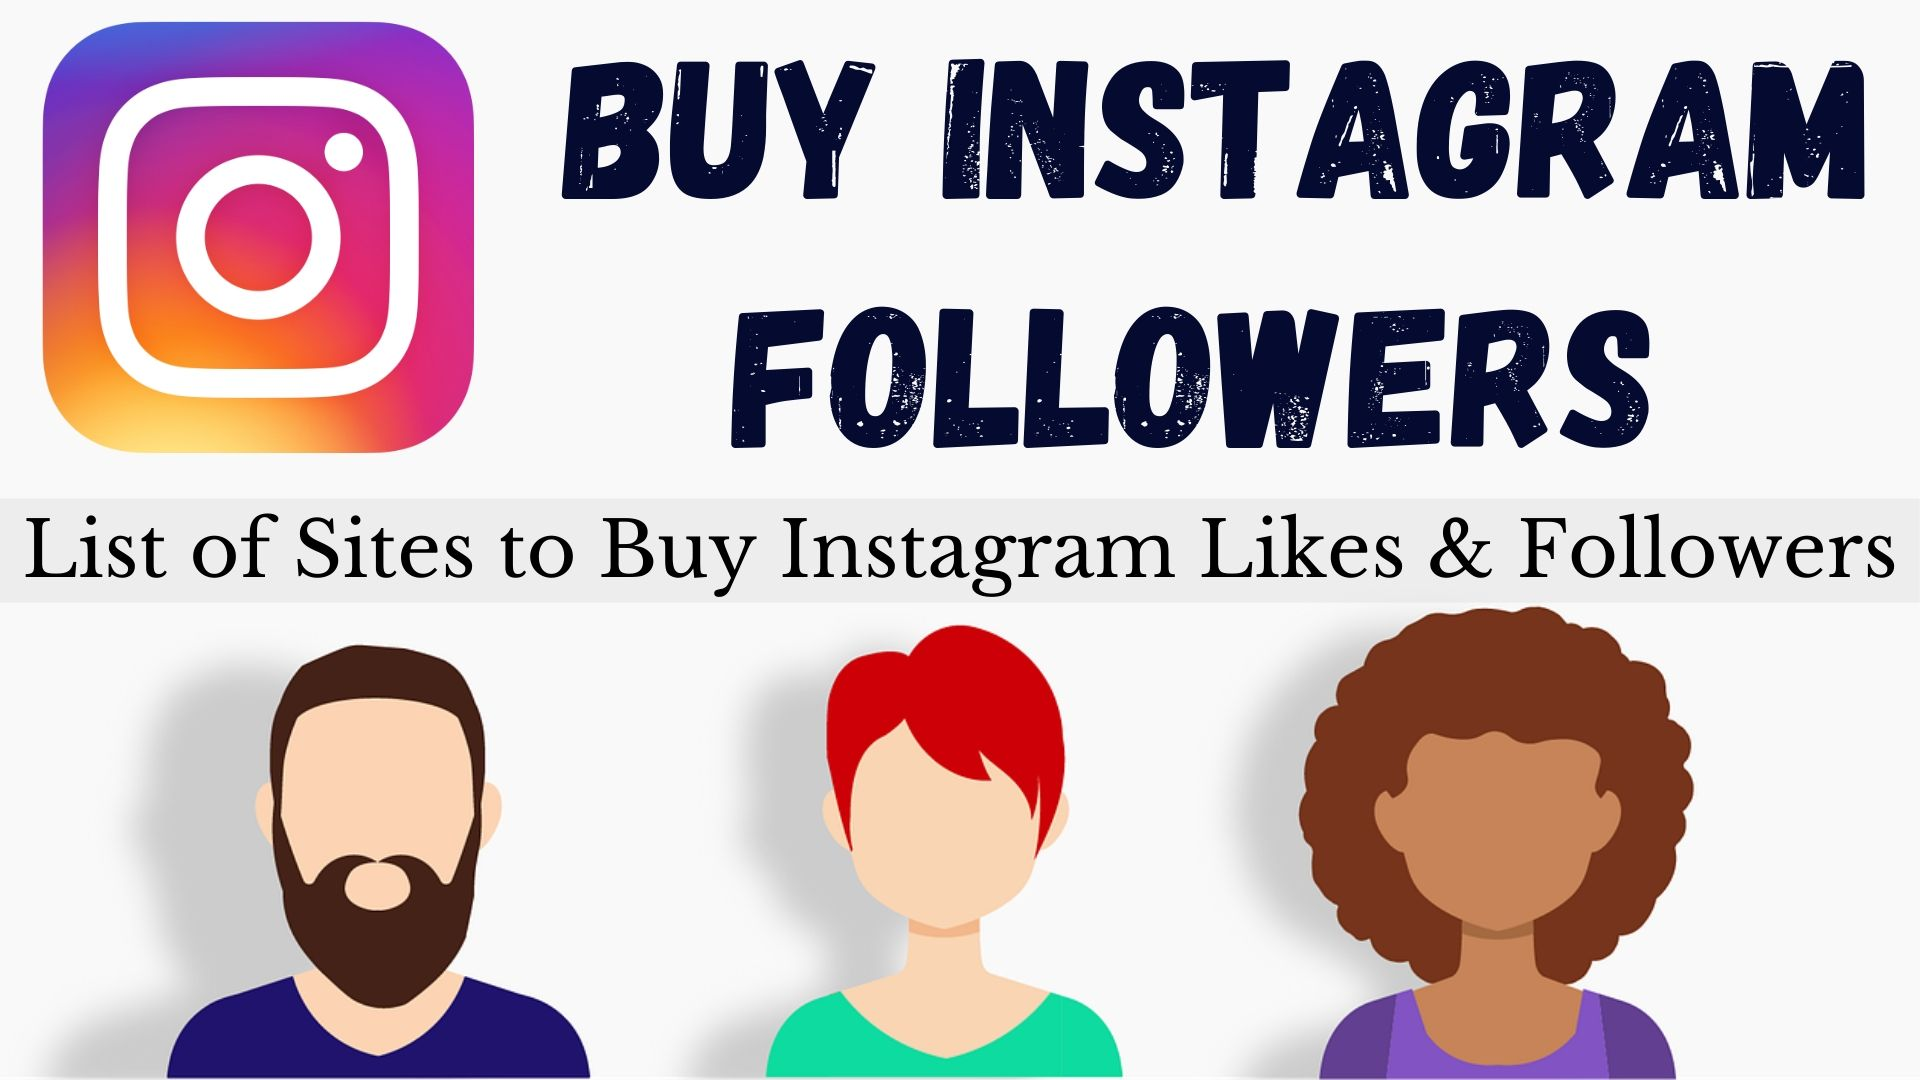 A useful guide for growing Instagram likes